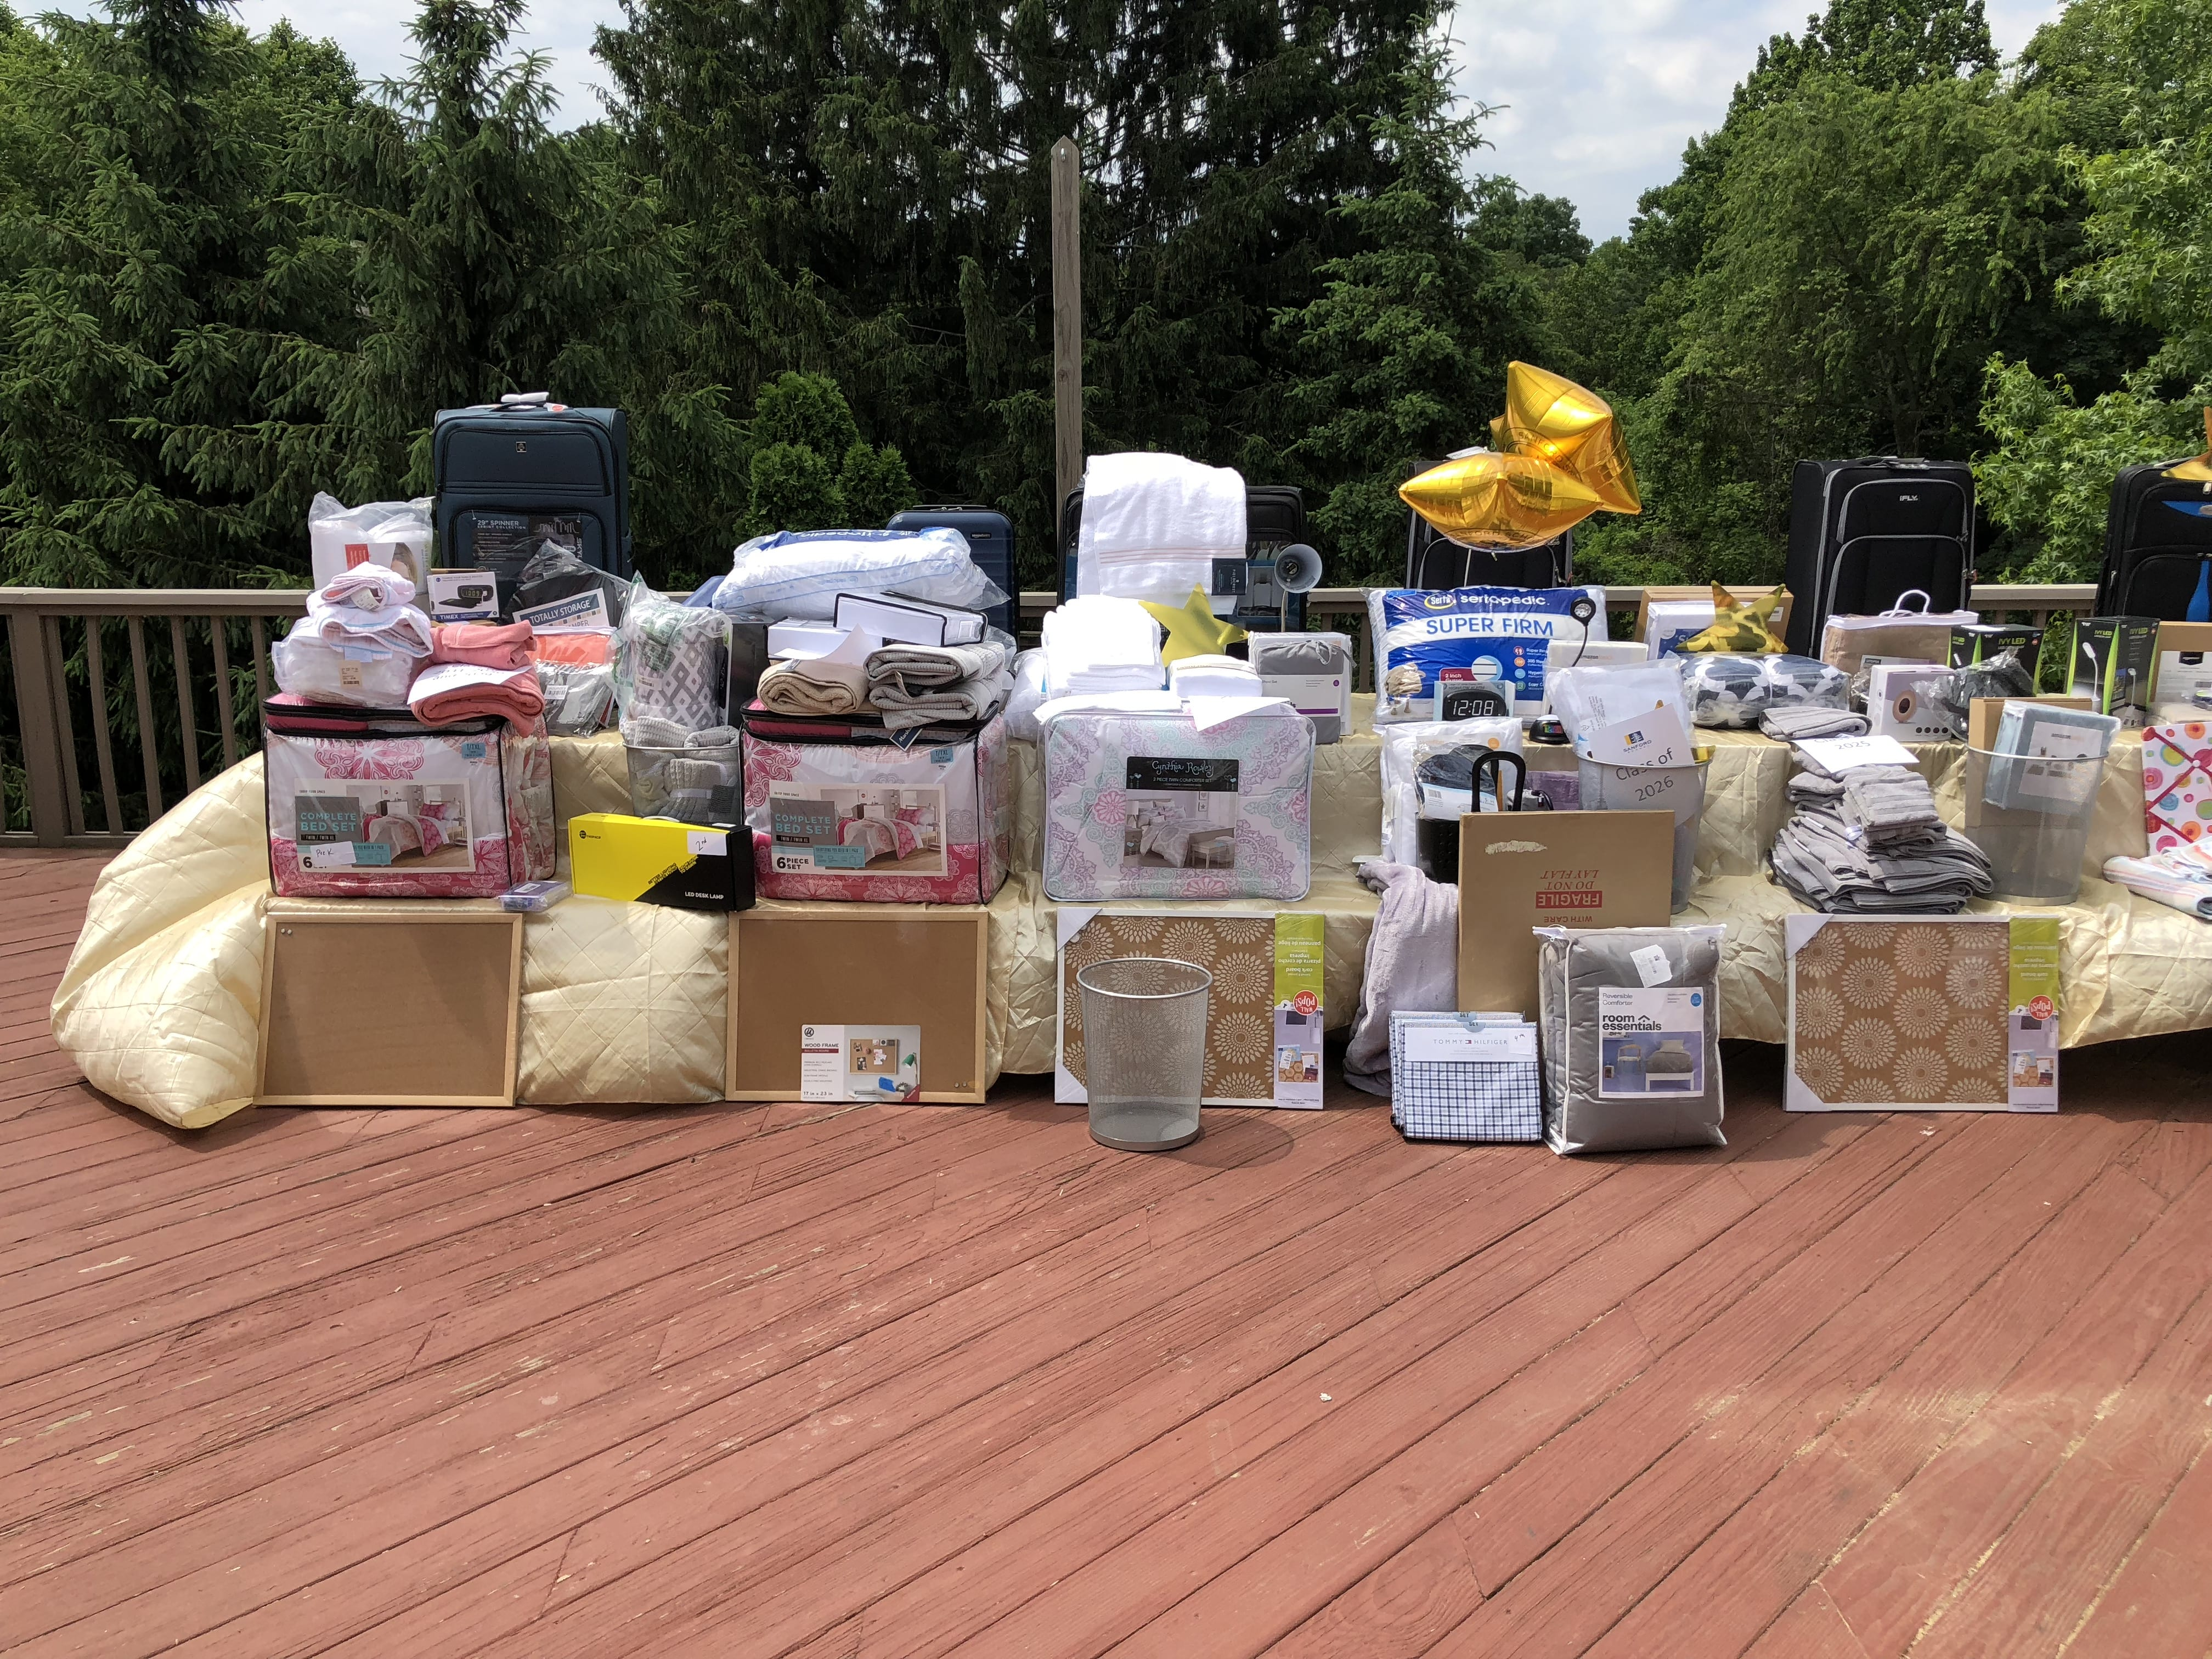 College dorm supplies collected for Taryn-Marie's Girl Scout Gold Award Project